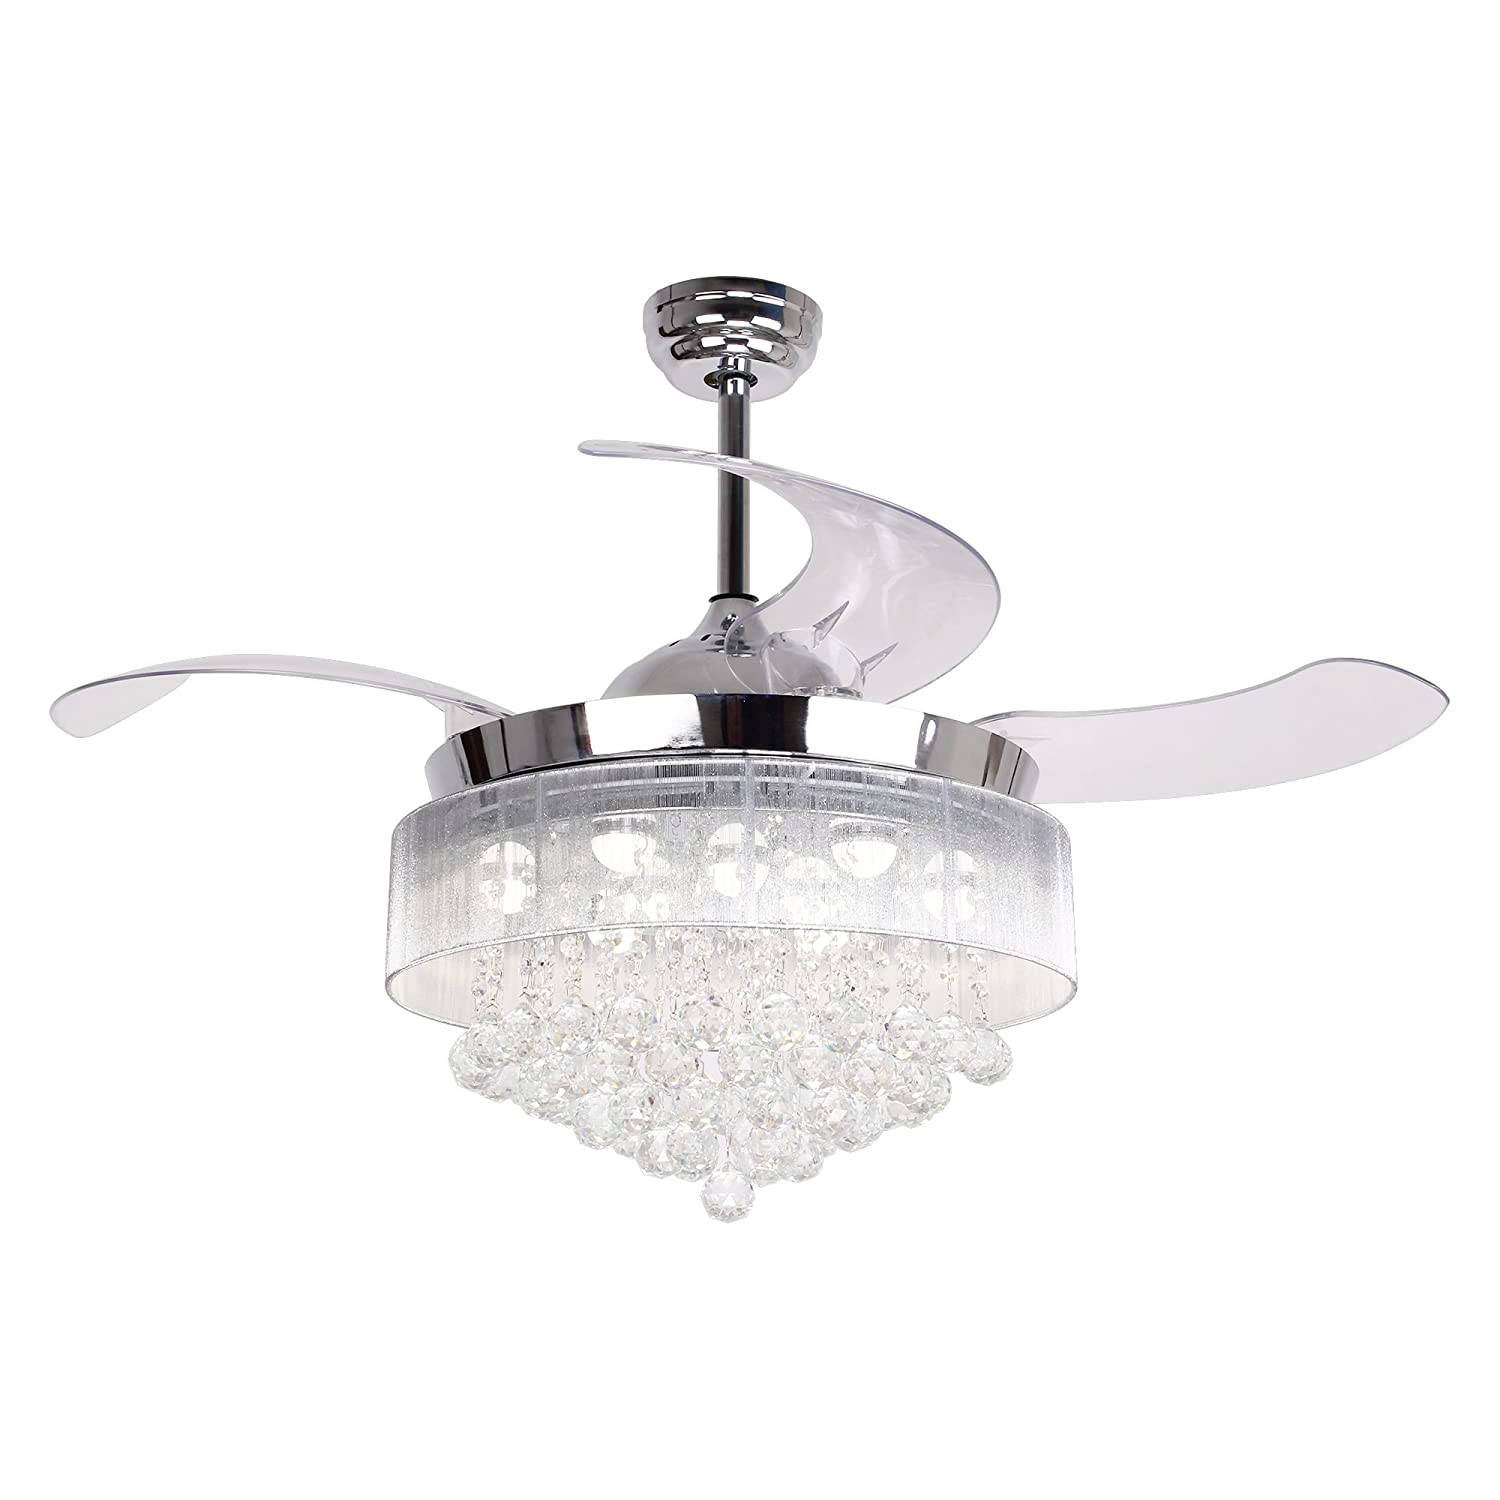 Parrot Uncle Ceiling Fan with Lights 46 Inch LED Ceiling Fans Retractable  Blades Modern Crystal Chandelier Fan Chrome Finished with Remote Control,  ...